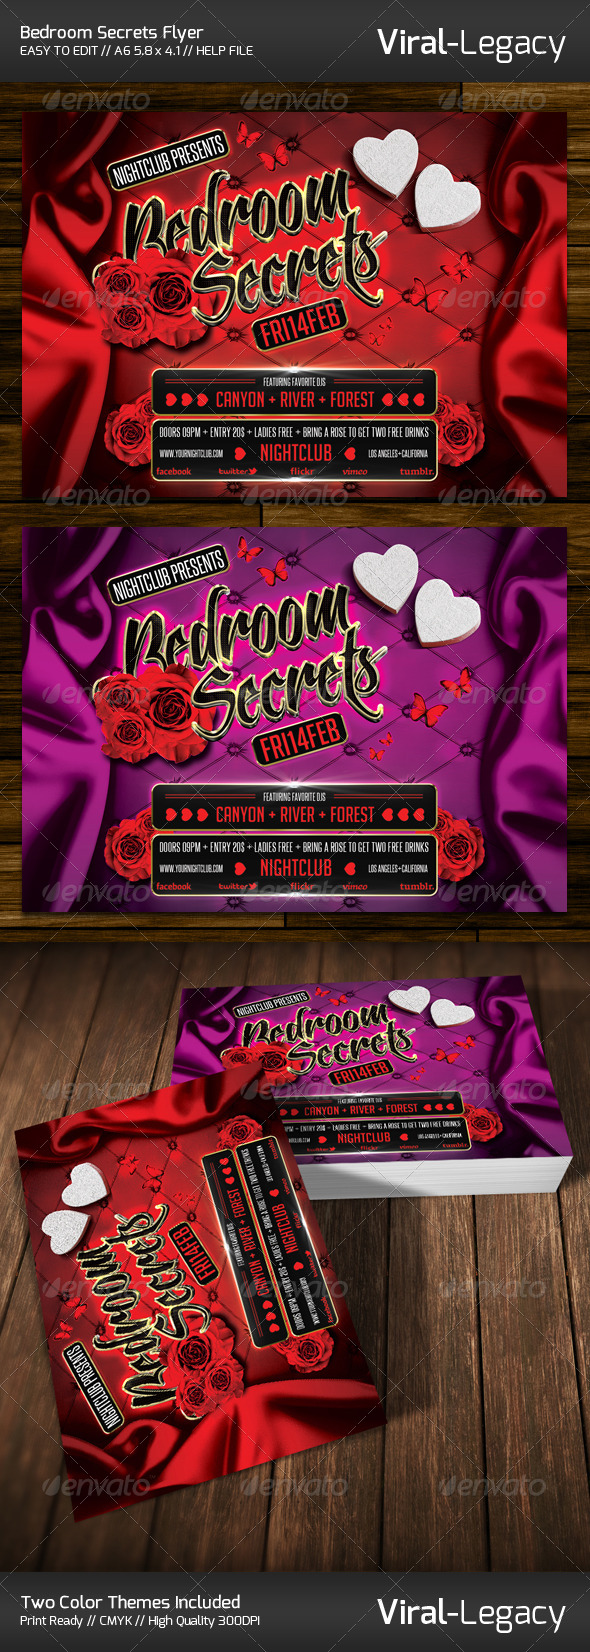 Bedroom Secrets Flyer - Events Flyers